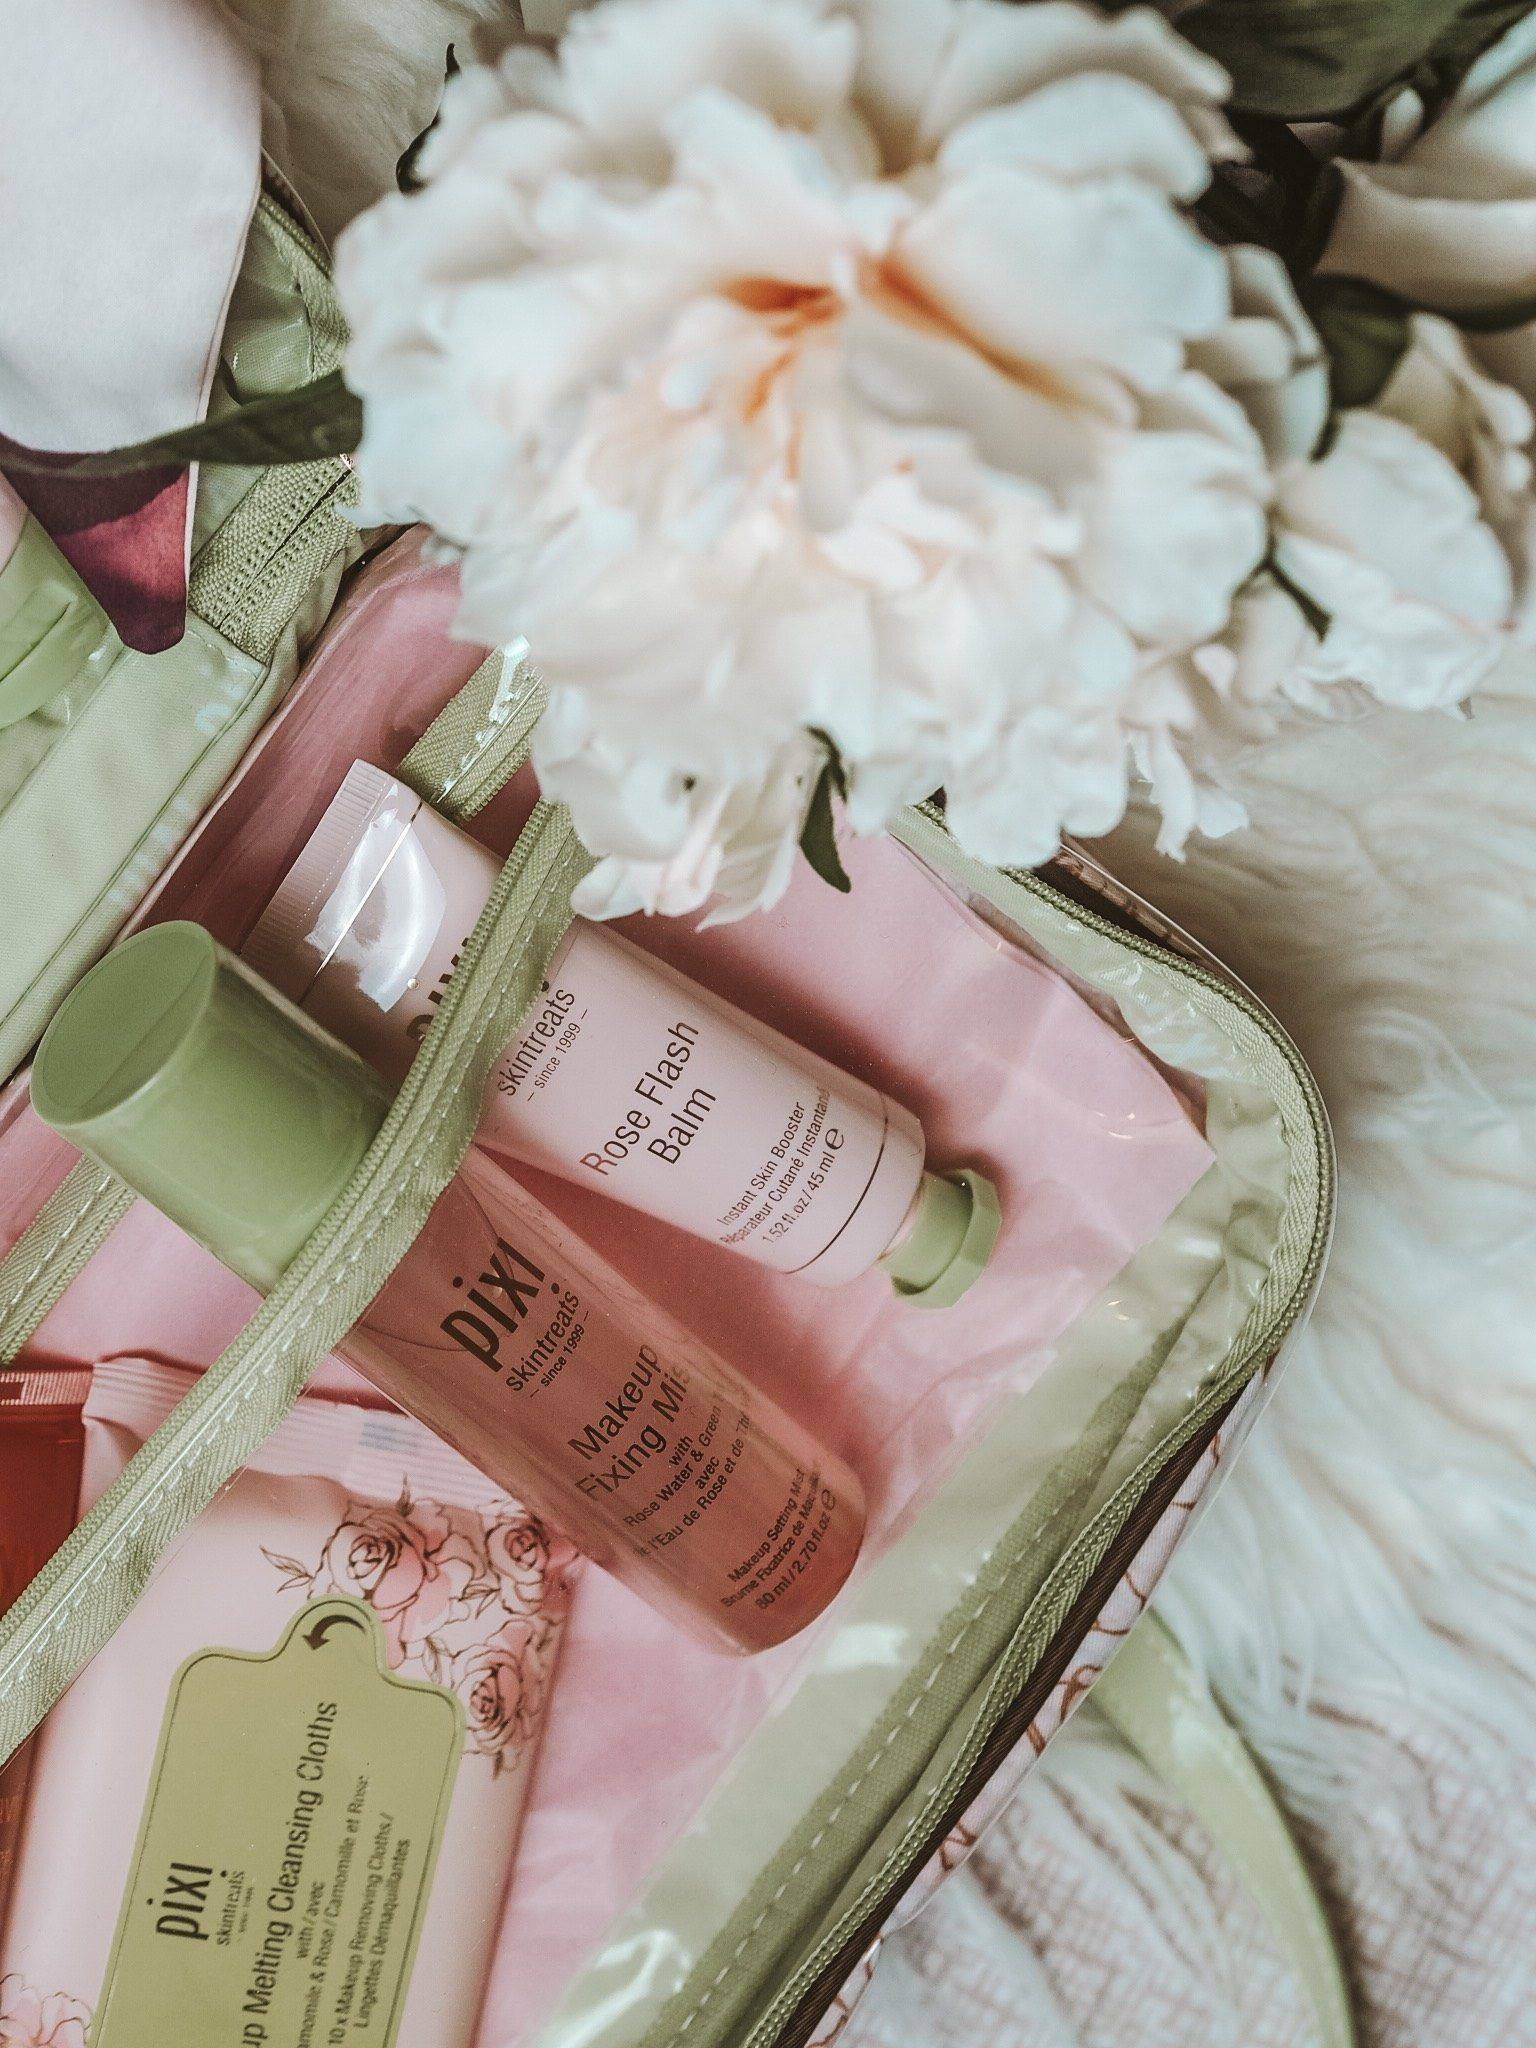 Time to Travel with Pixi Beauty Pixi beauty, Rose